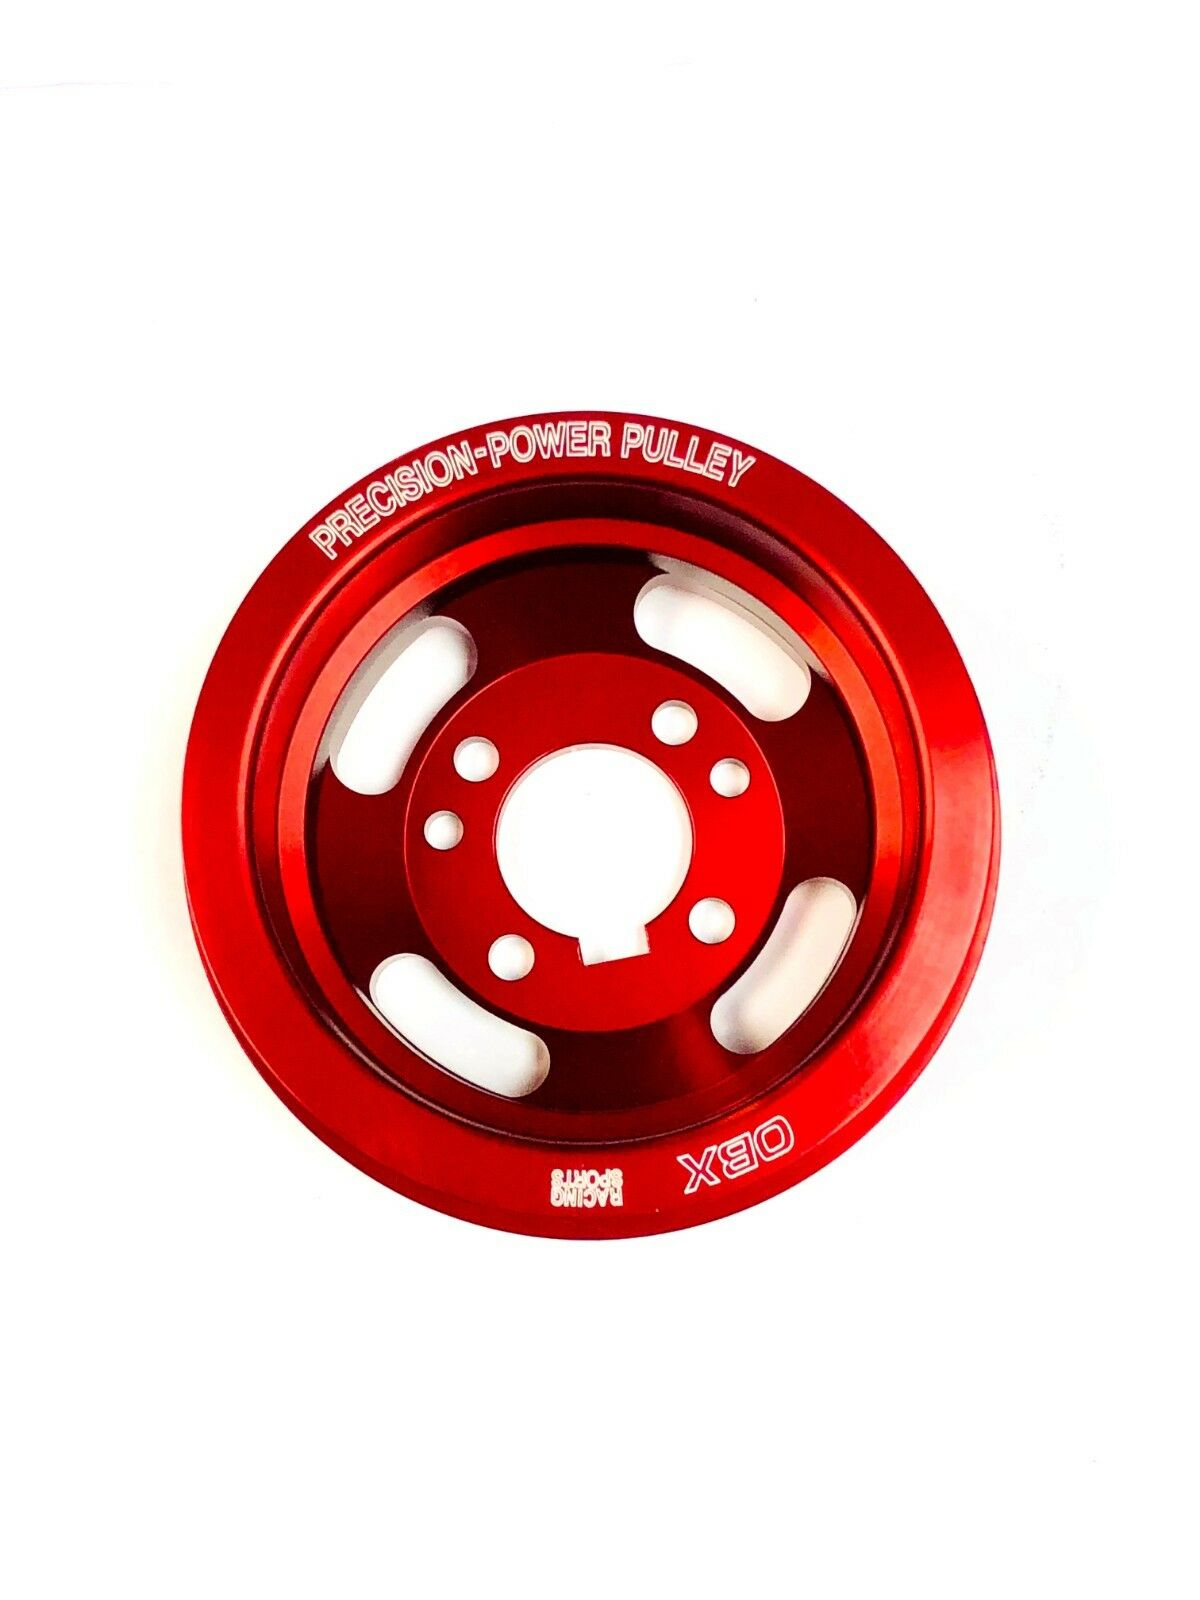 OBX Underdrive Crank Pulley For 1991 To 1992 Ford Escort GT LE-X 1.8L Red